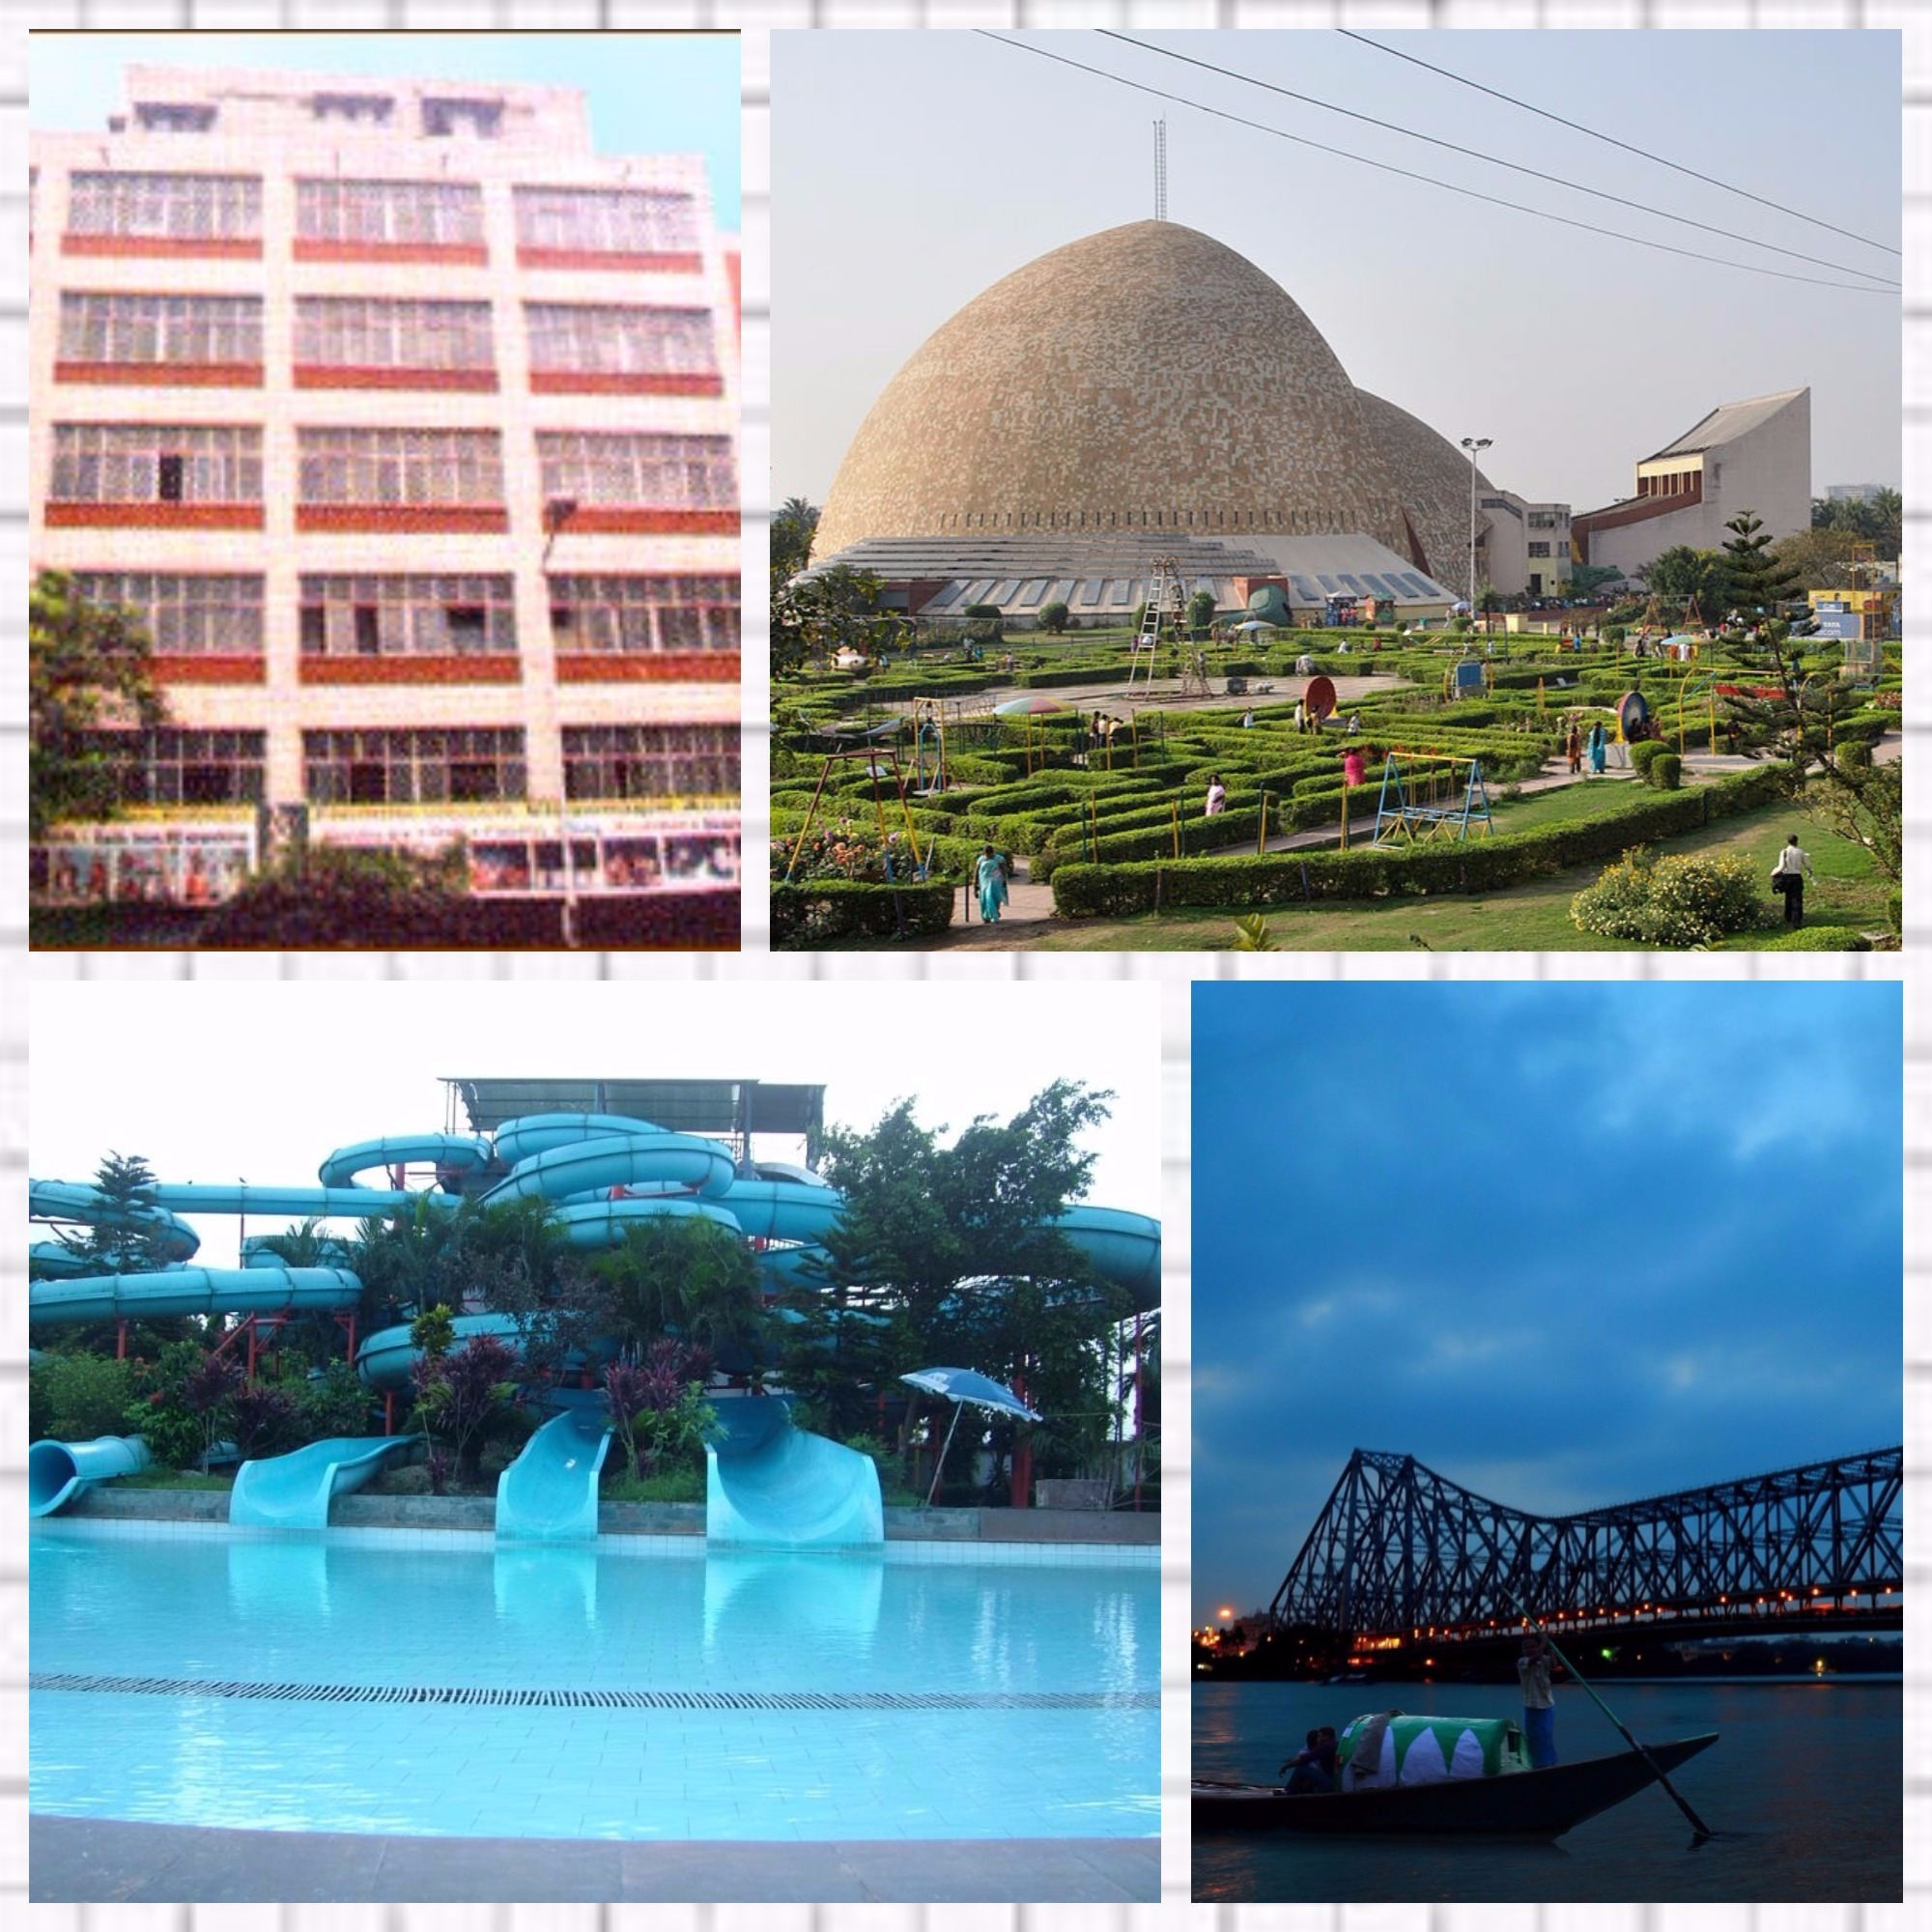 4 INCREDIBLE PLACES IN KOLKATA TO TAKE YOUR KIDS TO!